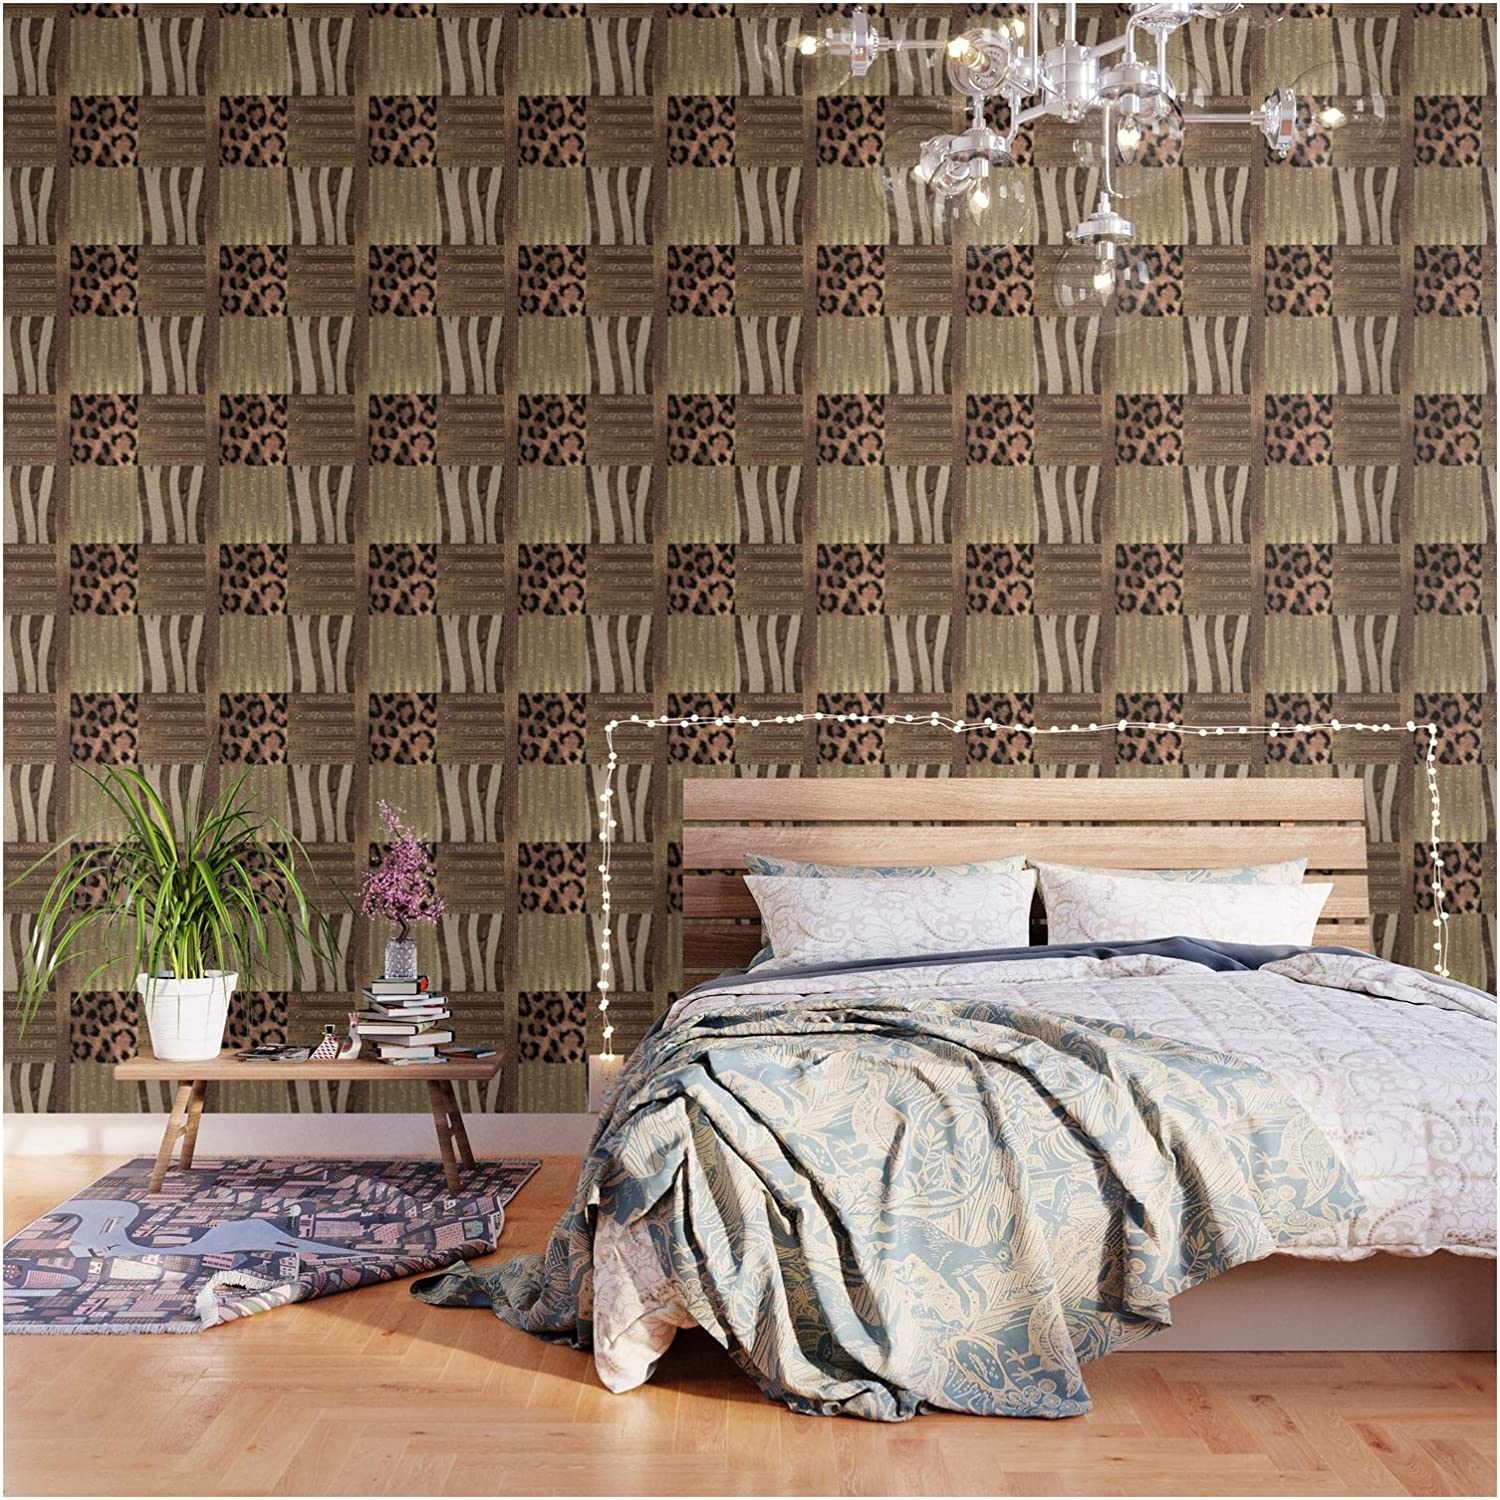 Gold Lioness Safari Chic by Christyne and Wallpape on Stick All items in the Max 65% OFF store Peel